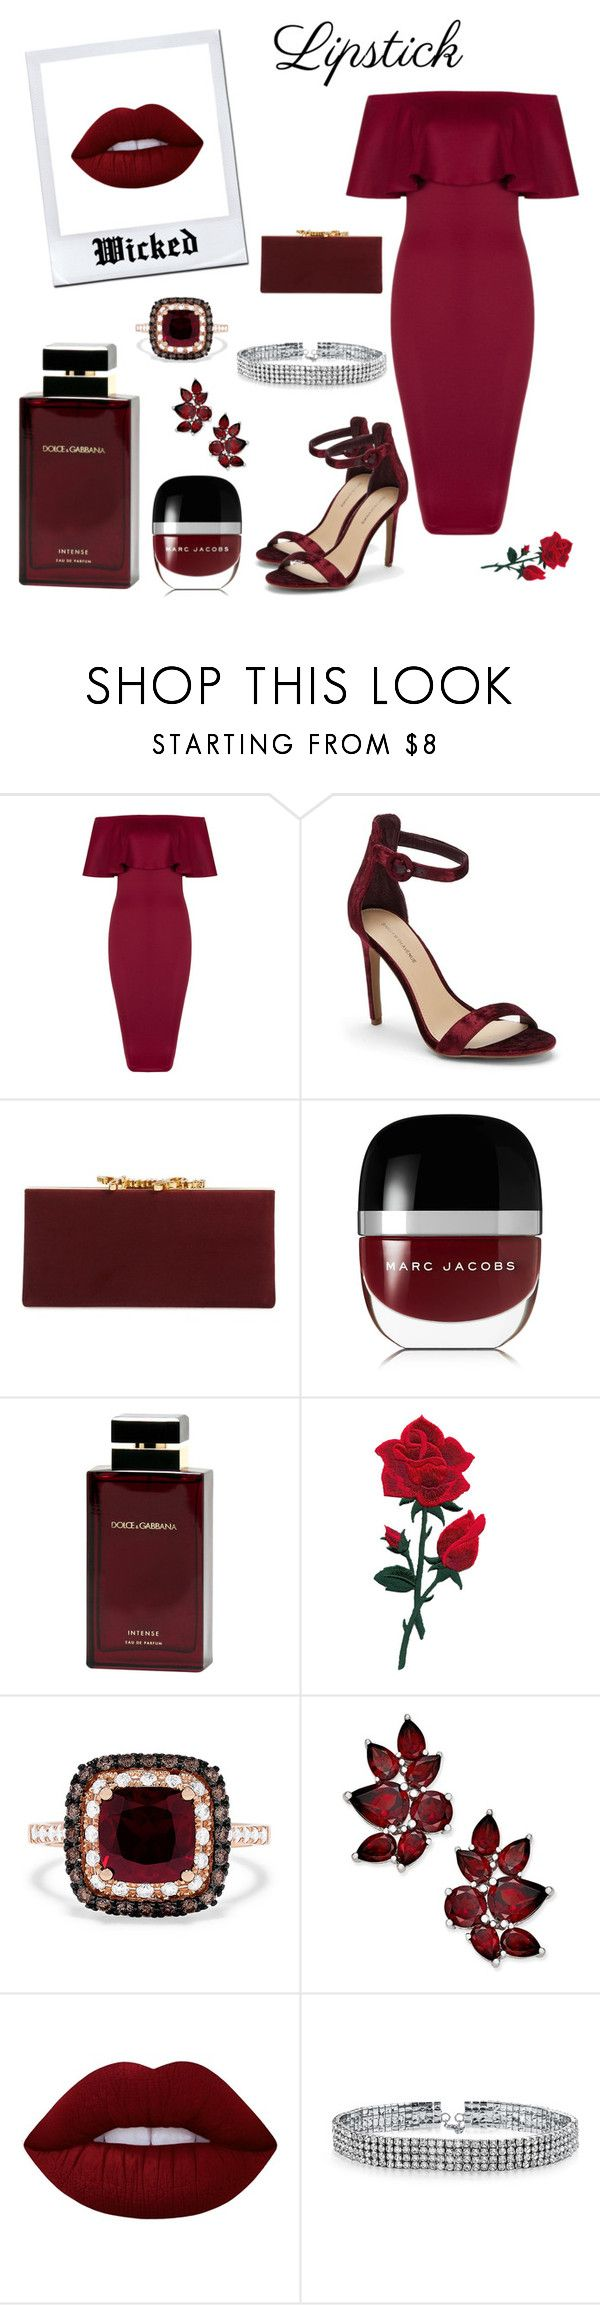 """OOTD (Lipstick Lime Crime Wicked)"" by cybertrasher ❤ liked on Polyvore featuring beauty, Saks Fifth Avenue, Jimmy Choo, Marc Jacobs, Dolce&Gabbana, Effy Jewelry, Lime Crime and Bling Jewelry"